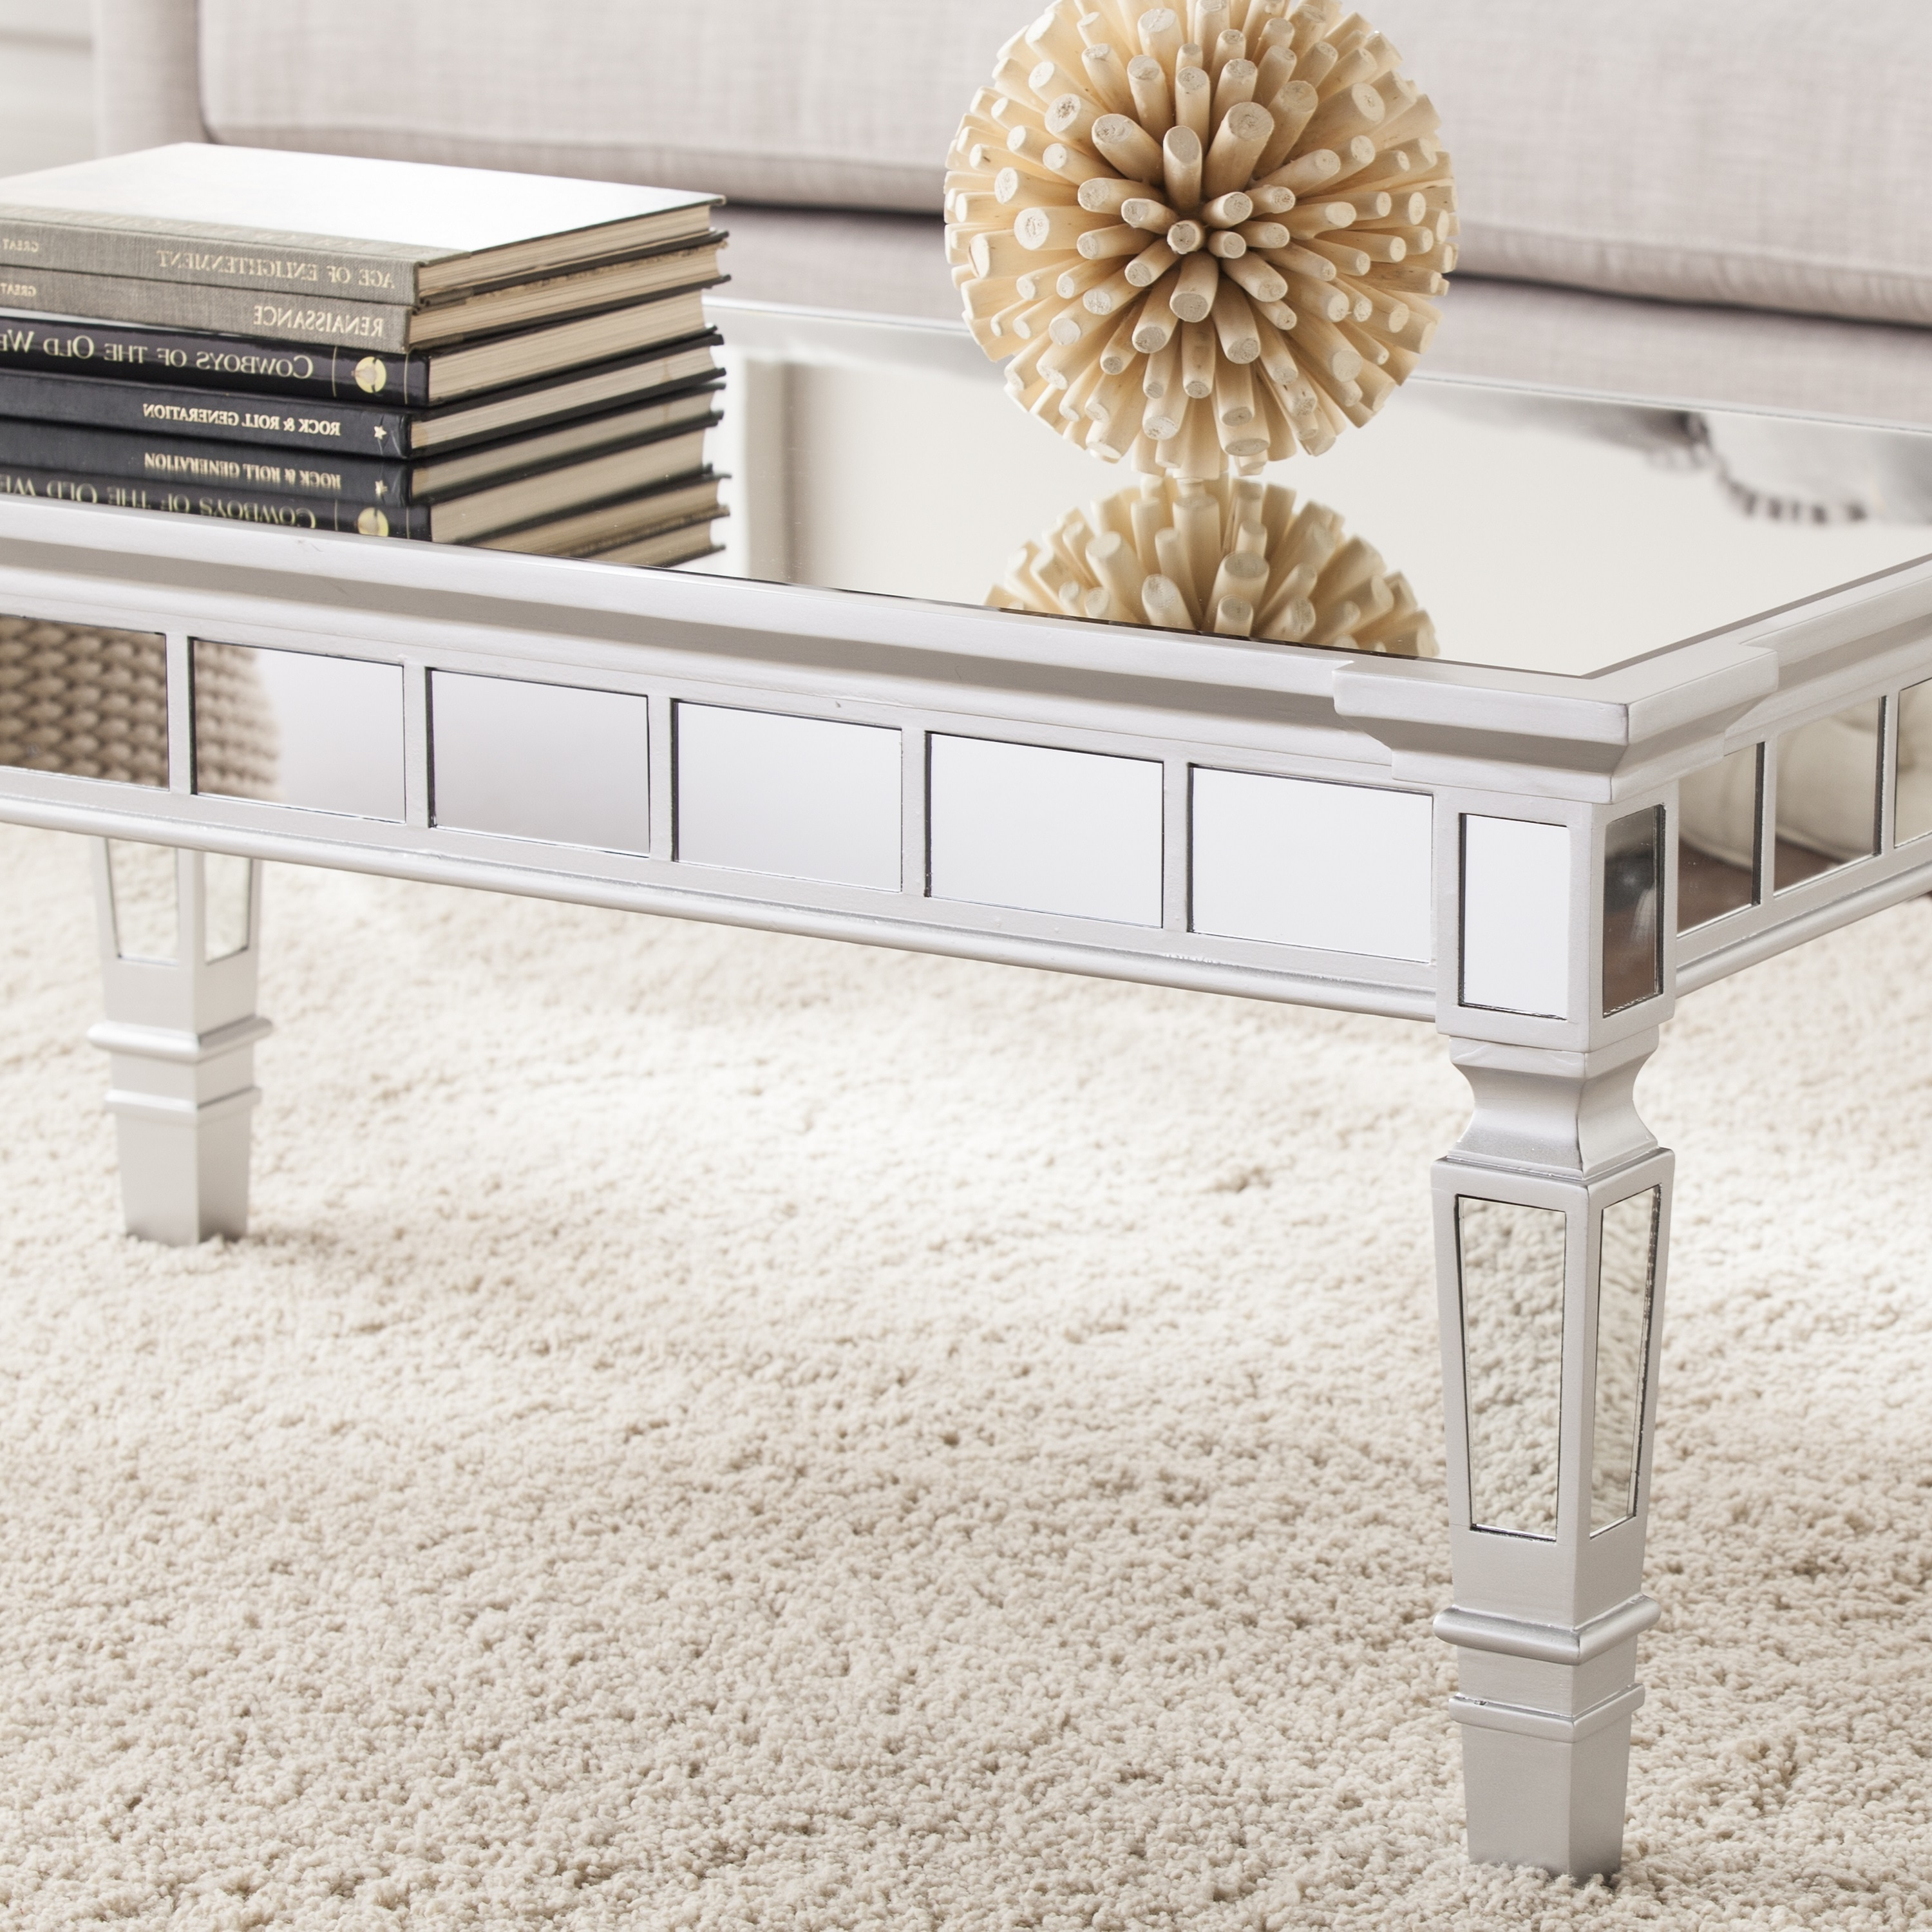 Silver Orchid Olivia Glam Mirrored Rectangular Cocktail Table – Matte Silver Intended For Well Known Silver Orchid Olivia Mirrored Coffee Cocktail Tables (View 15 of 20)